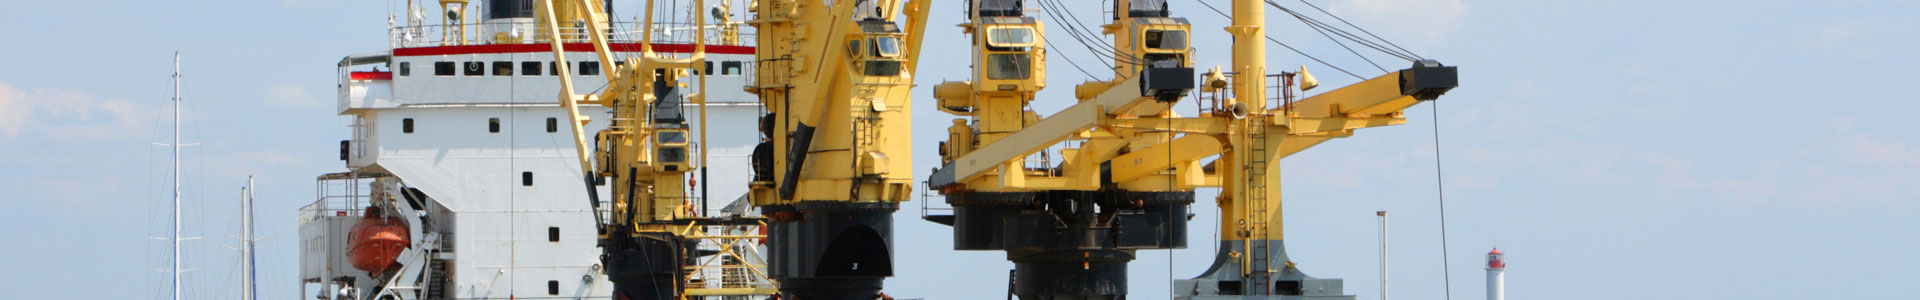 Crane and Hoist Winches